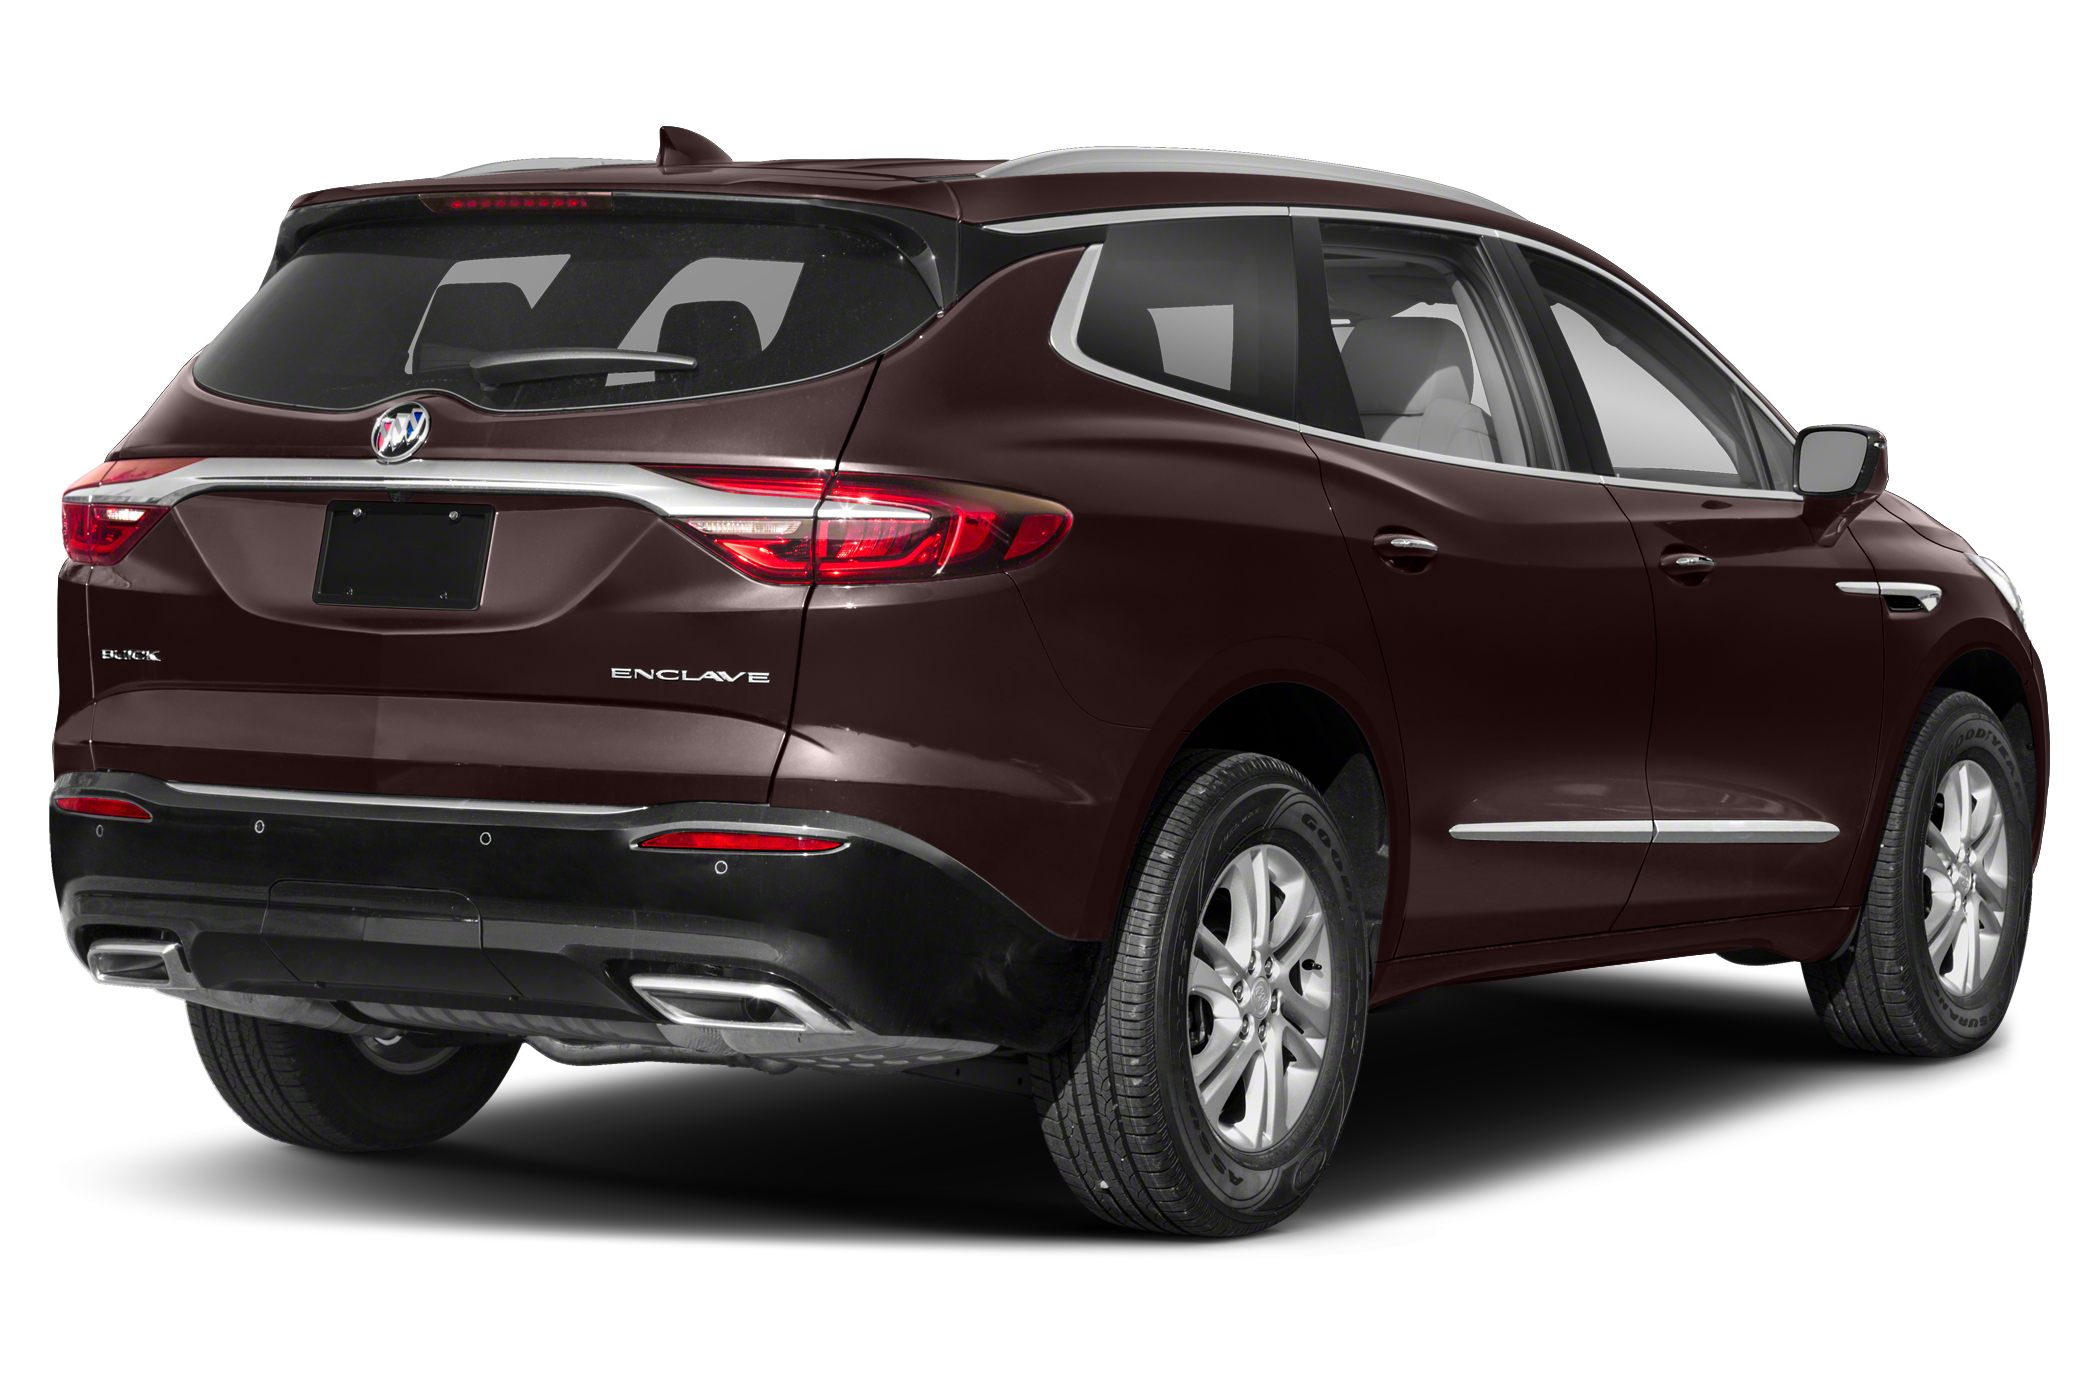 enclave dealer and gmc car payments buick champion lease specials brighton new monthly is a